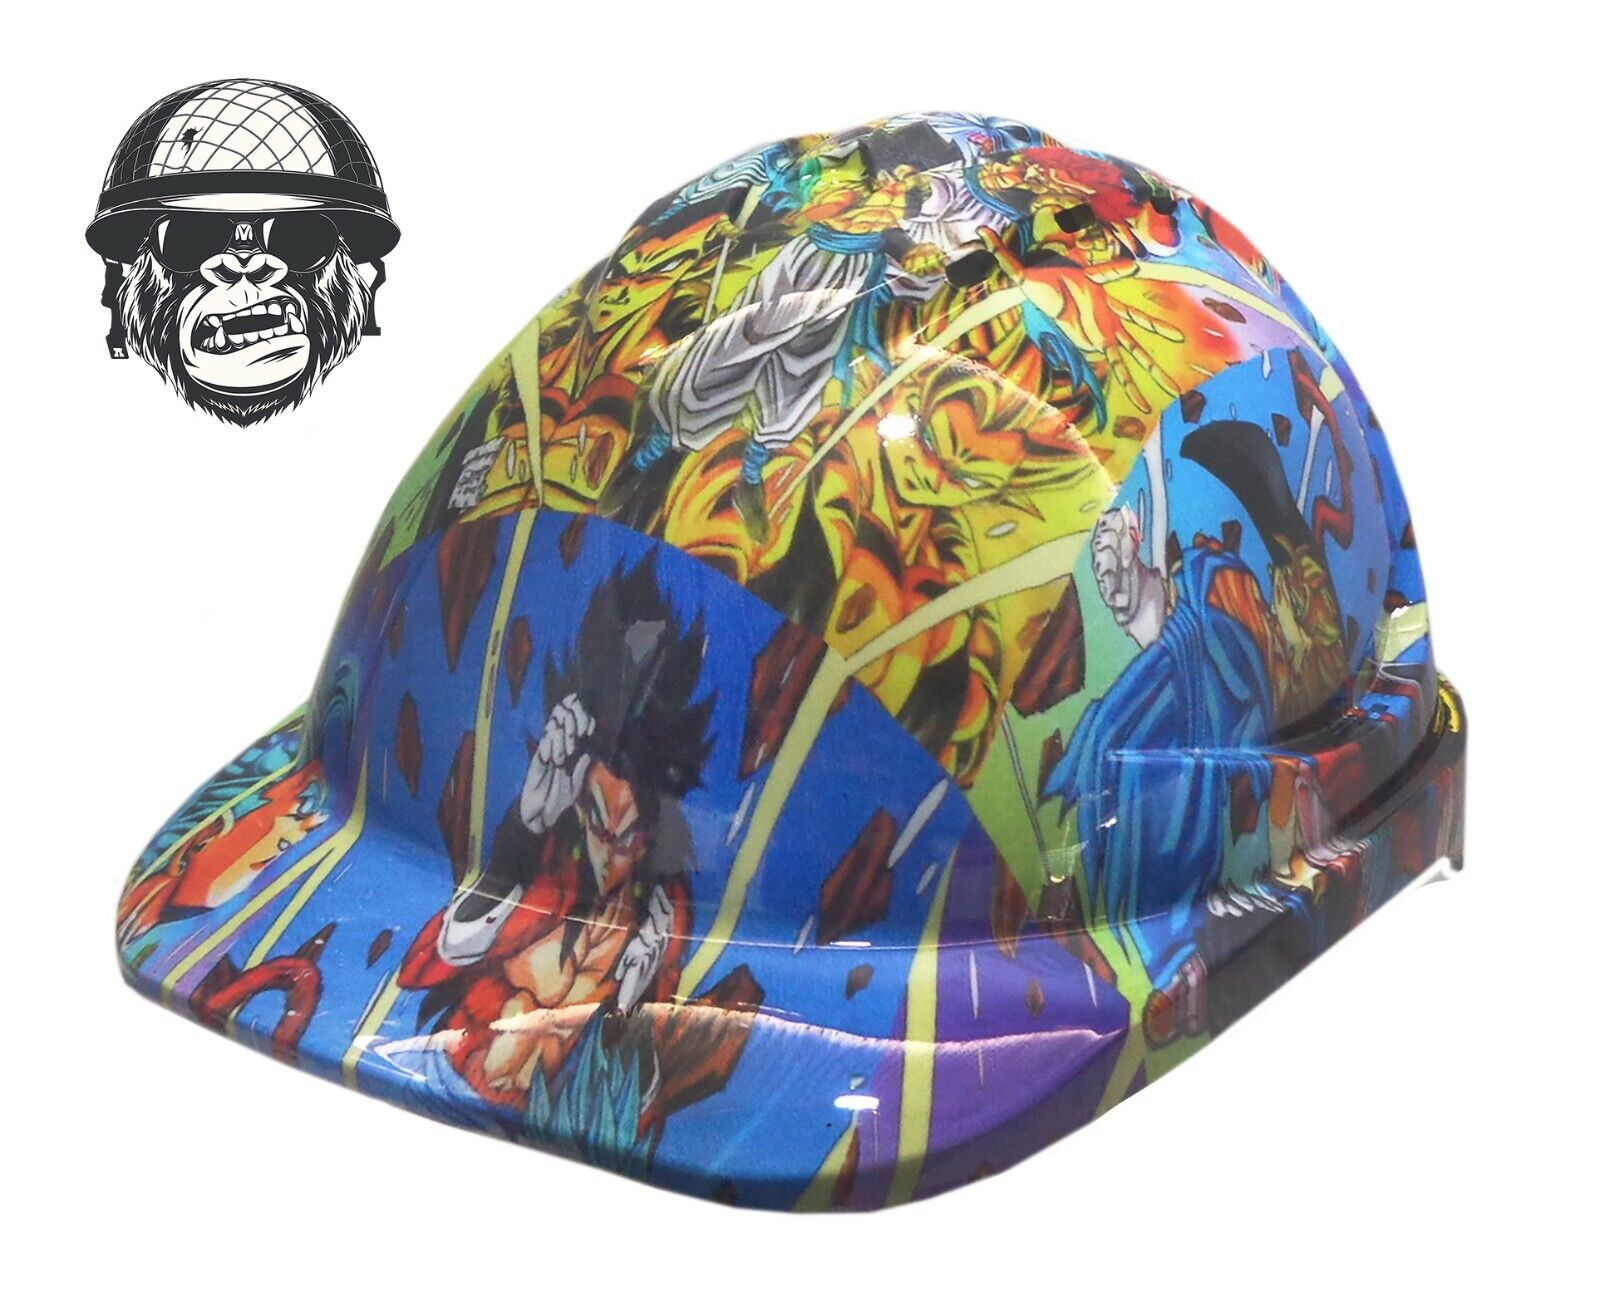 Custom Hydrographic Safety Hard Hat Mining Industrial - DRAGON BALL Z CAP STYLE